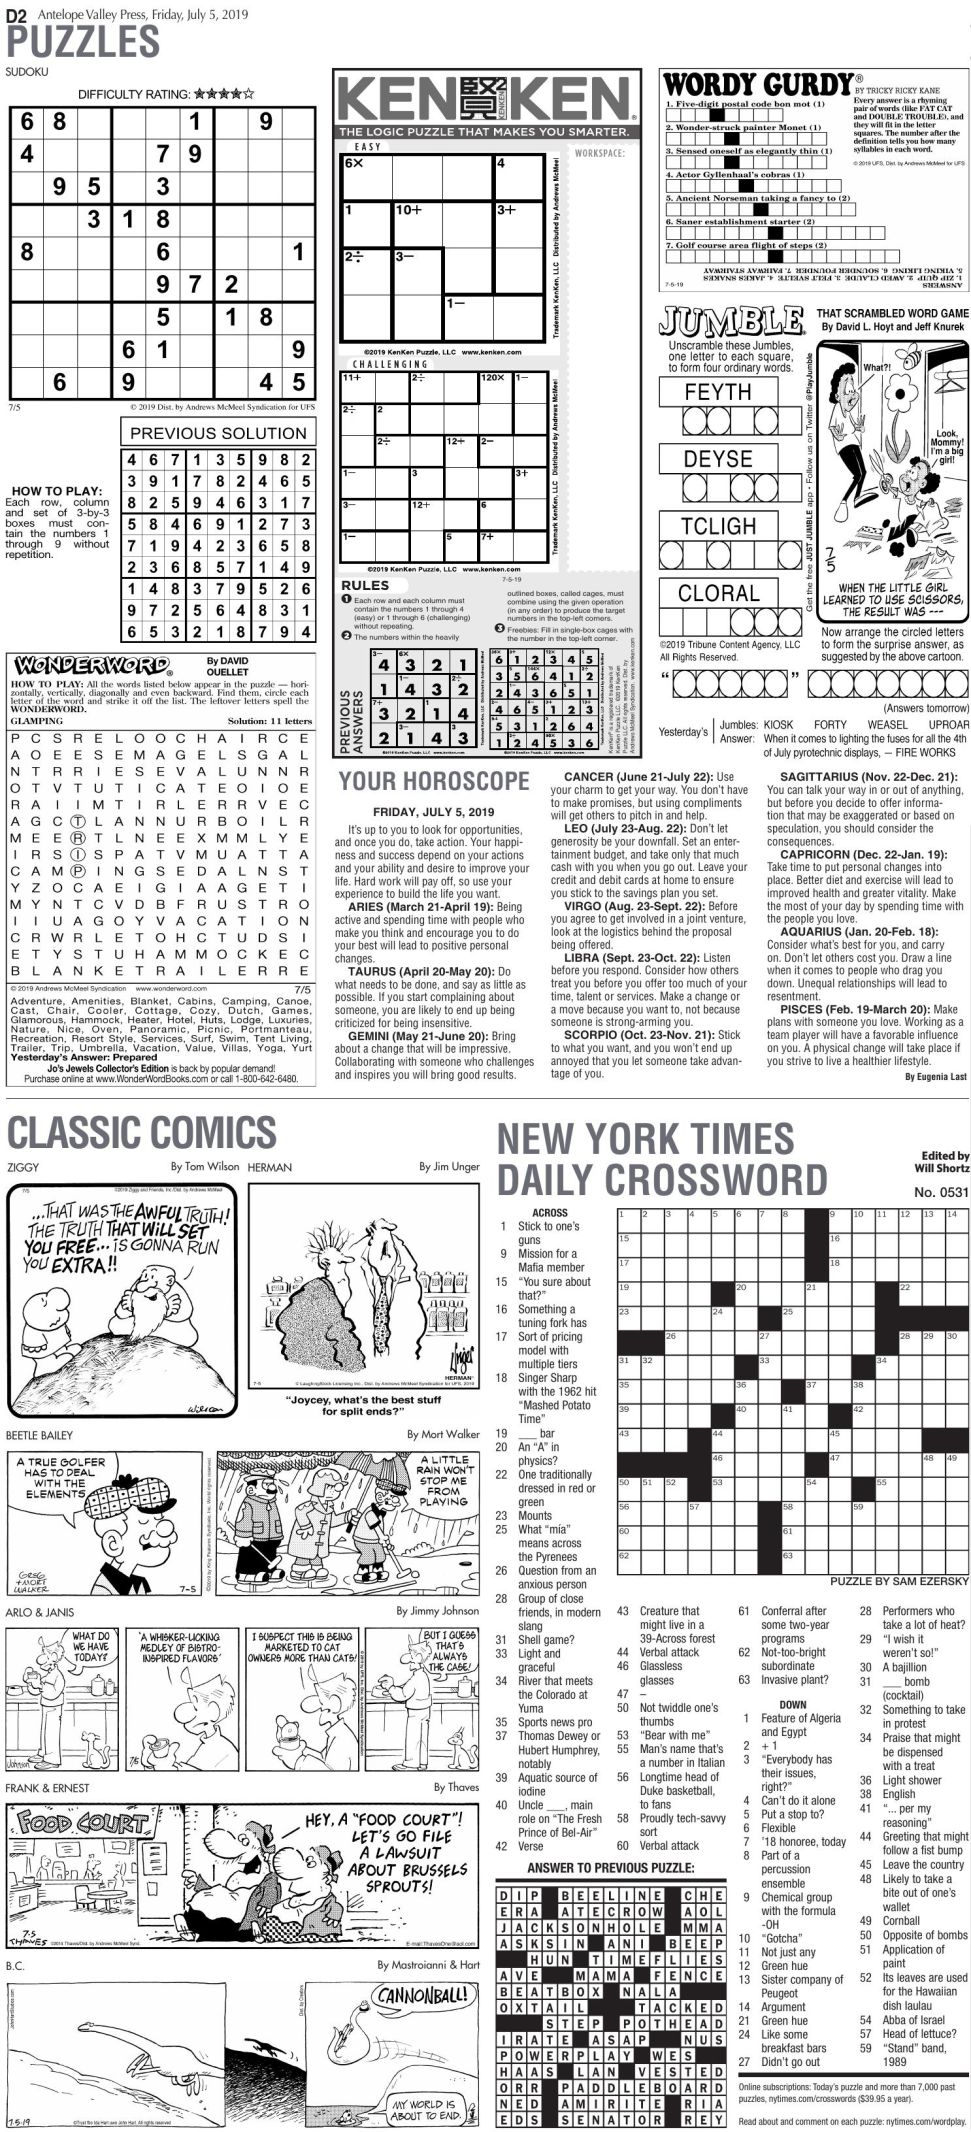 July 5, 2019, Puzzles